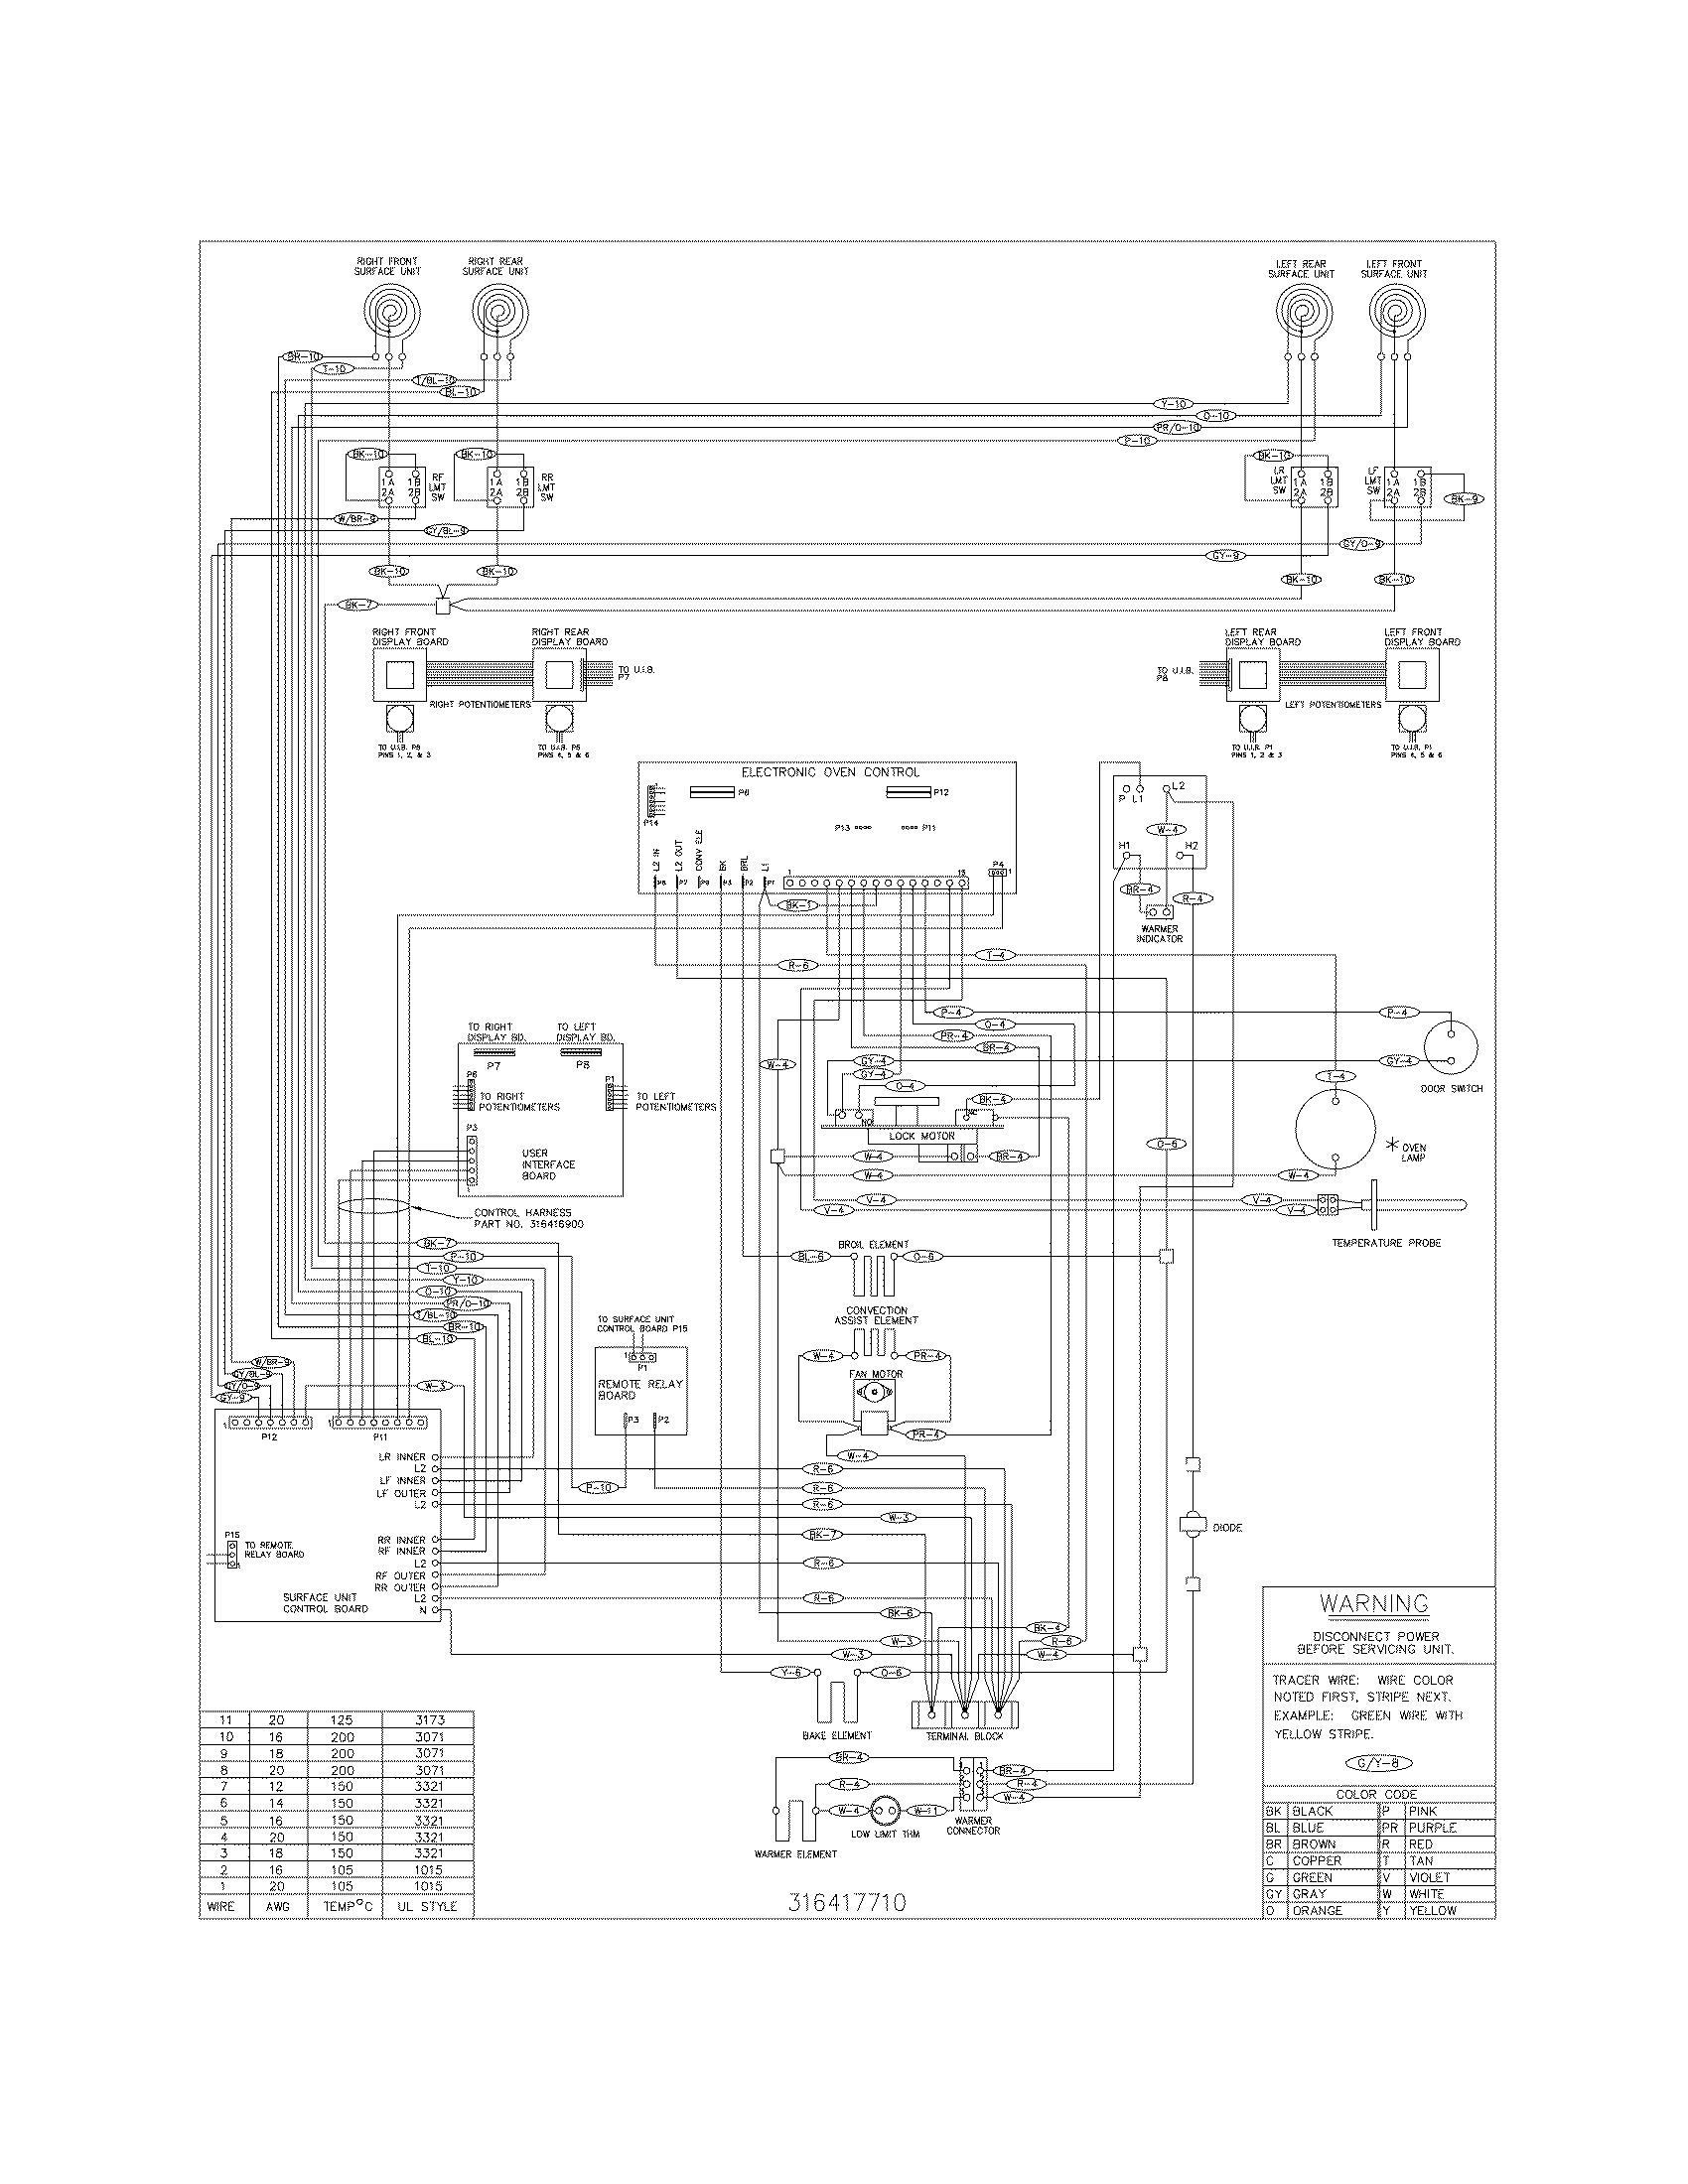 kenmore 790 electric range wiring diagram electric range wiring diagram frigidaire plef398dce electric range timer - stove clocks ... #4